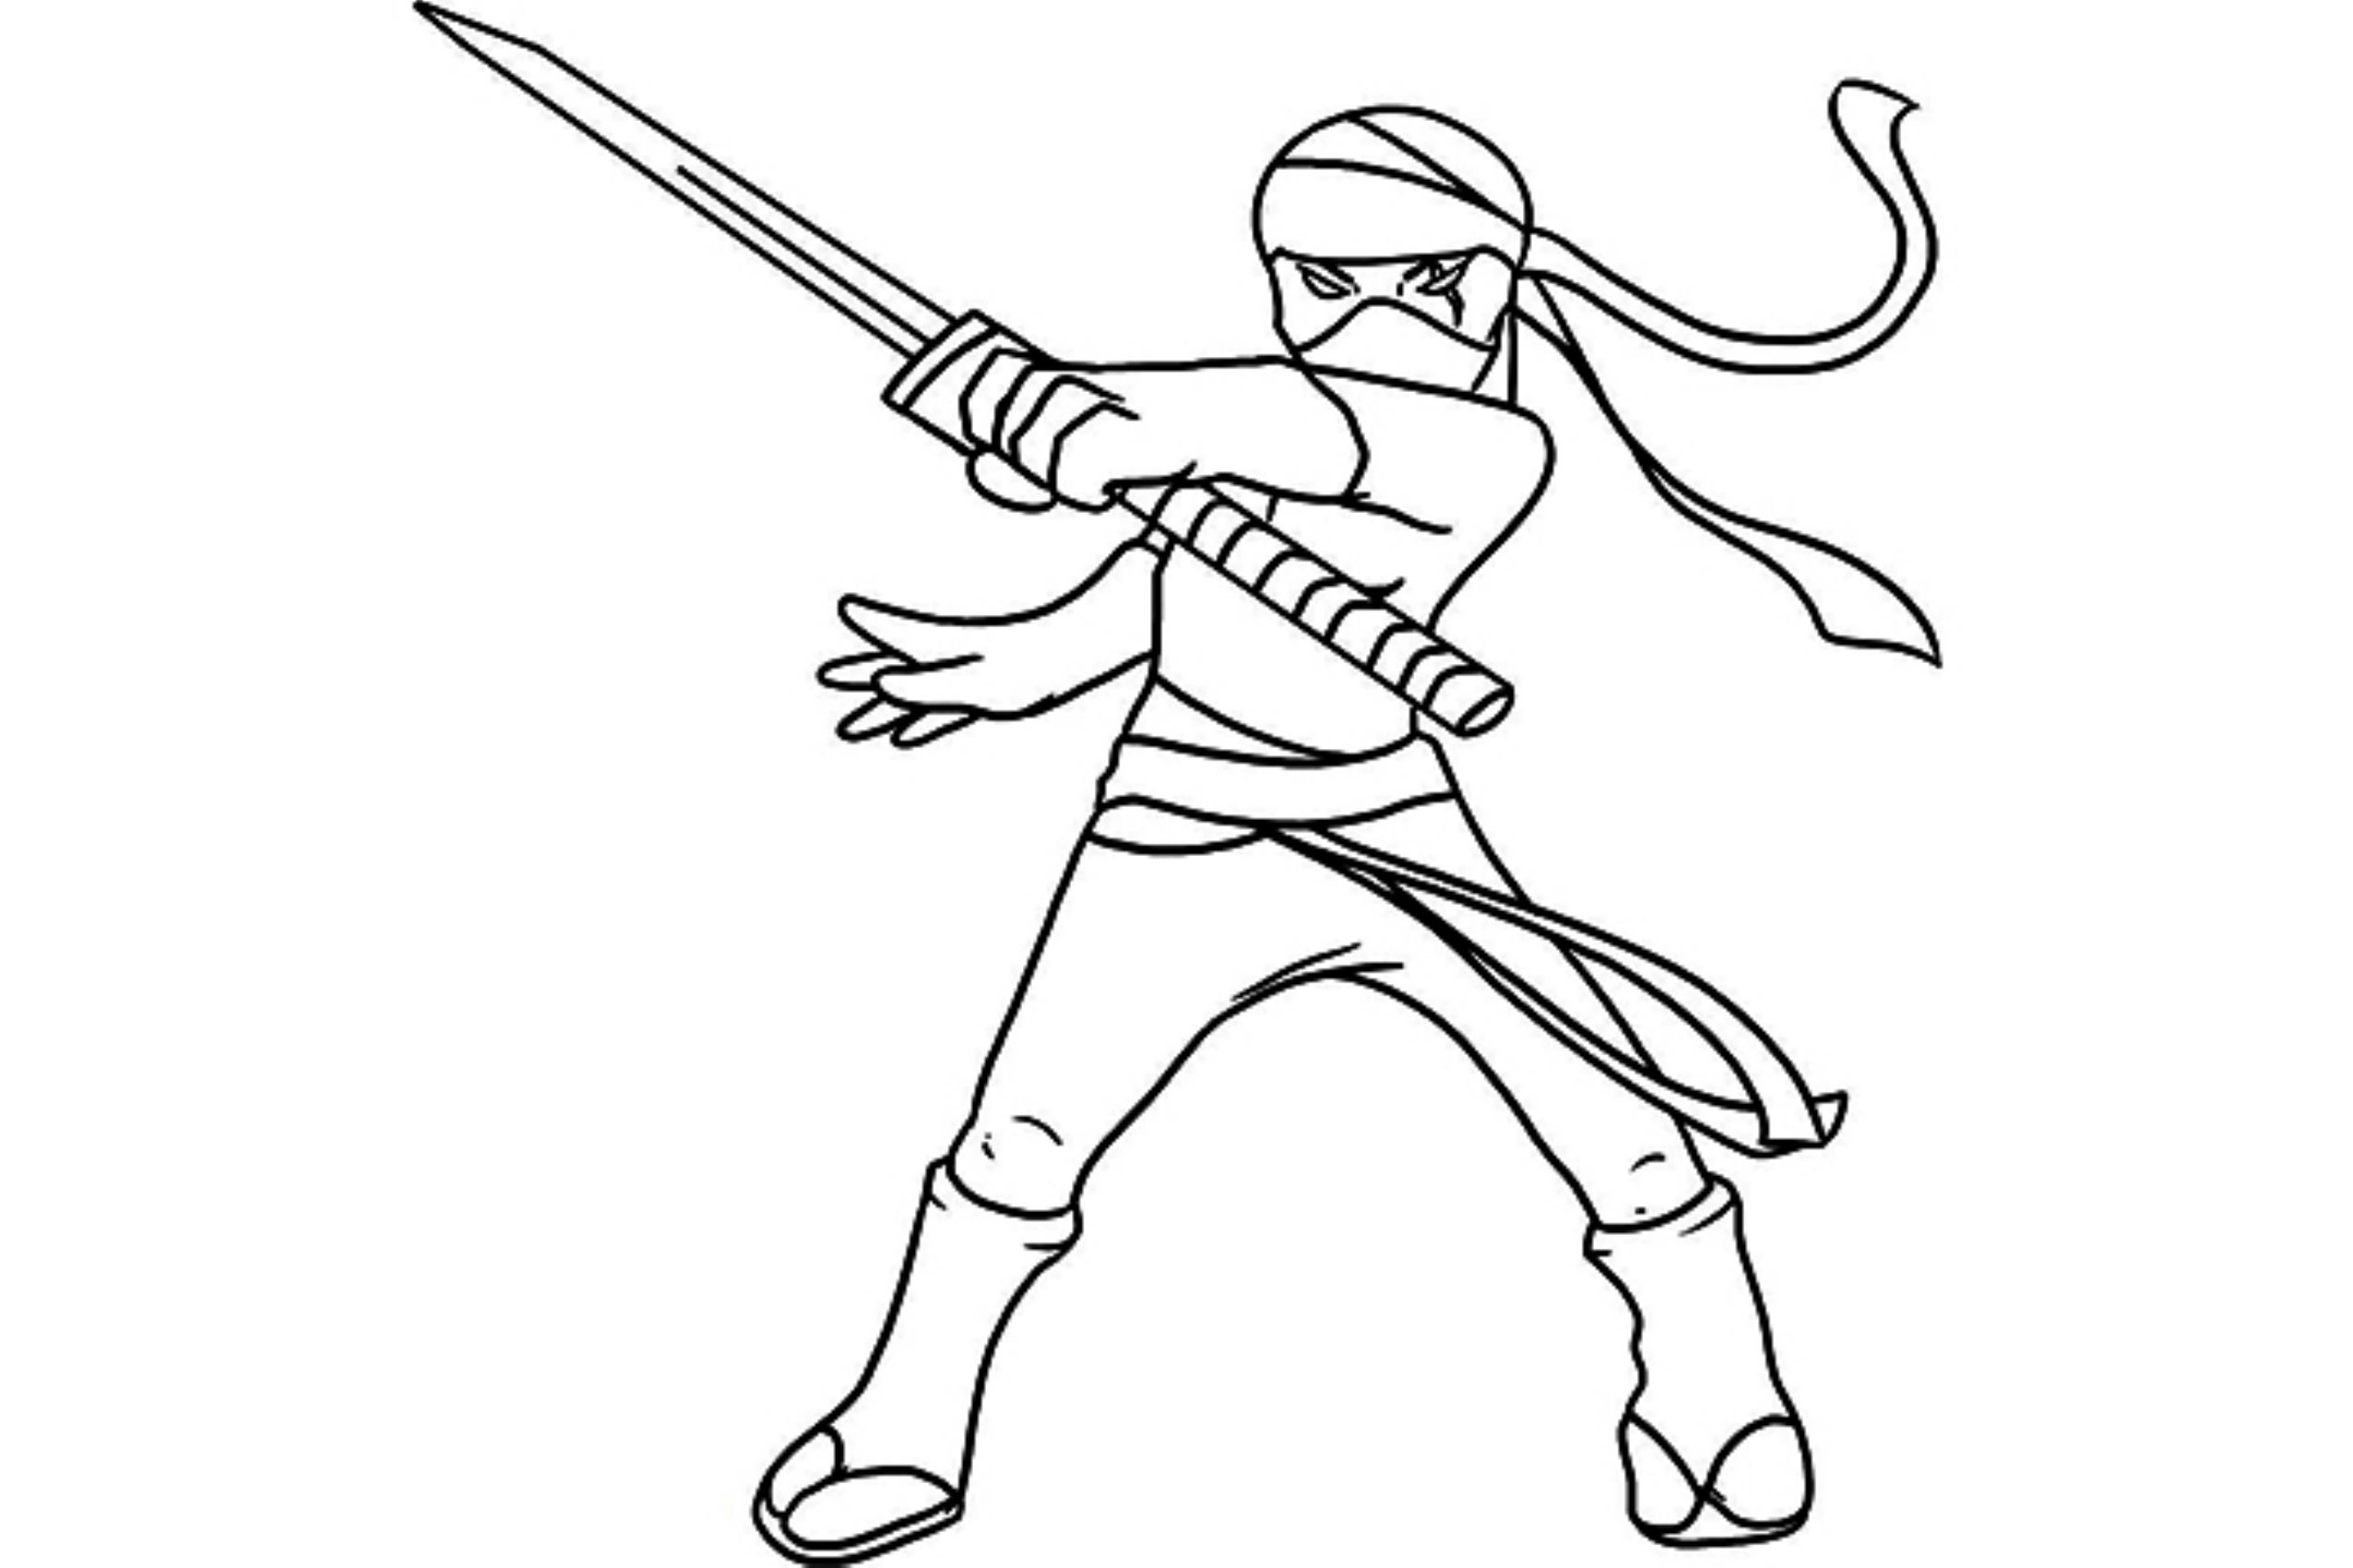 free ninja star coloring pages - photo#23